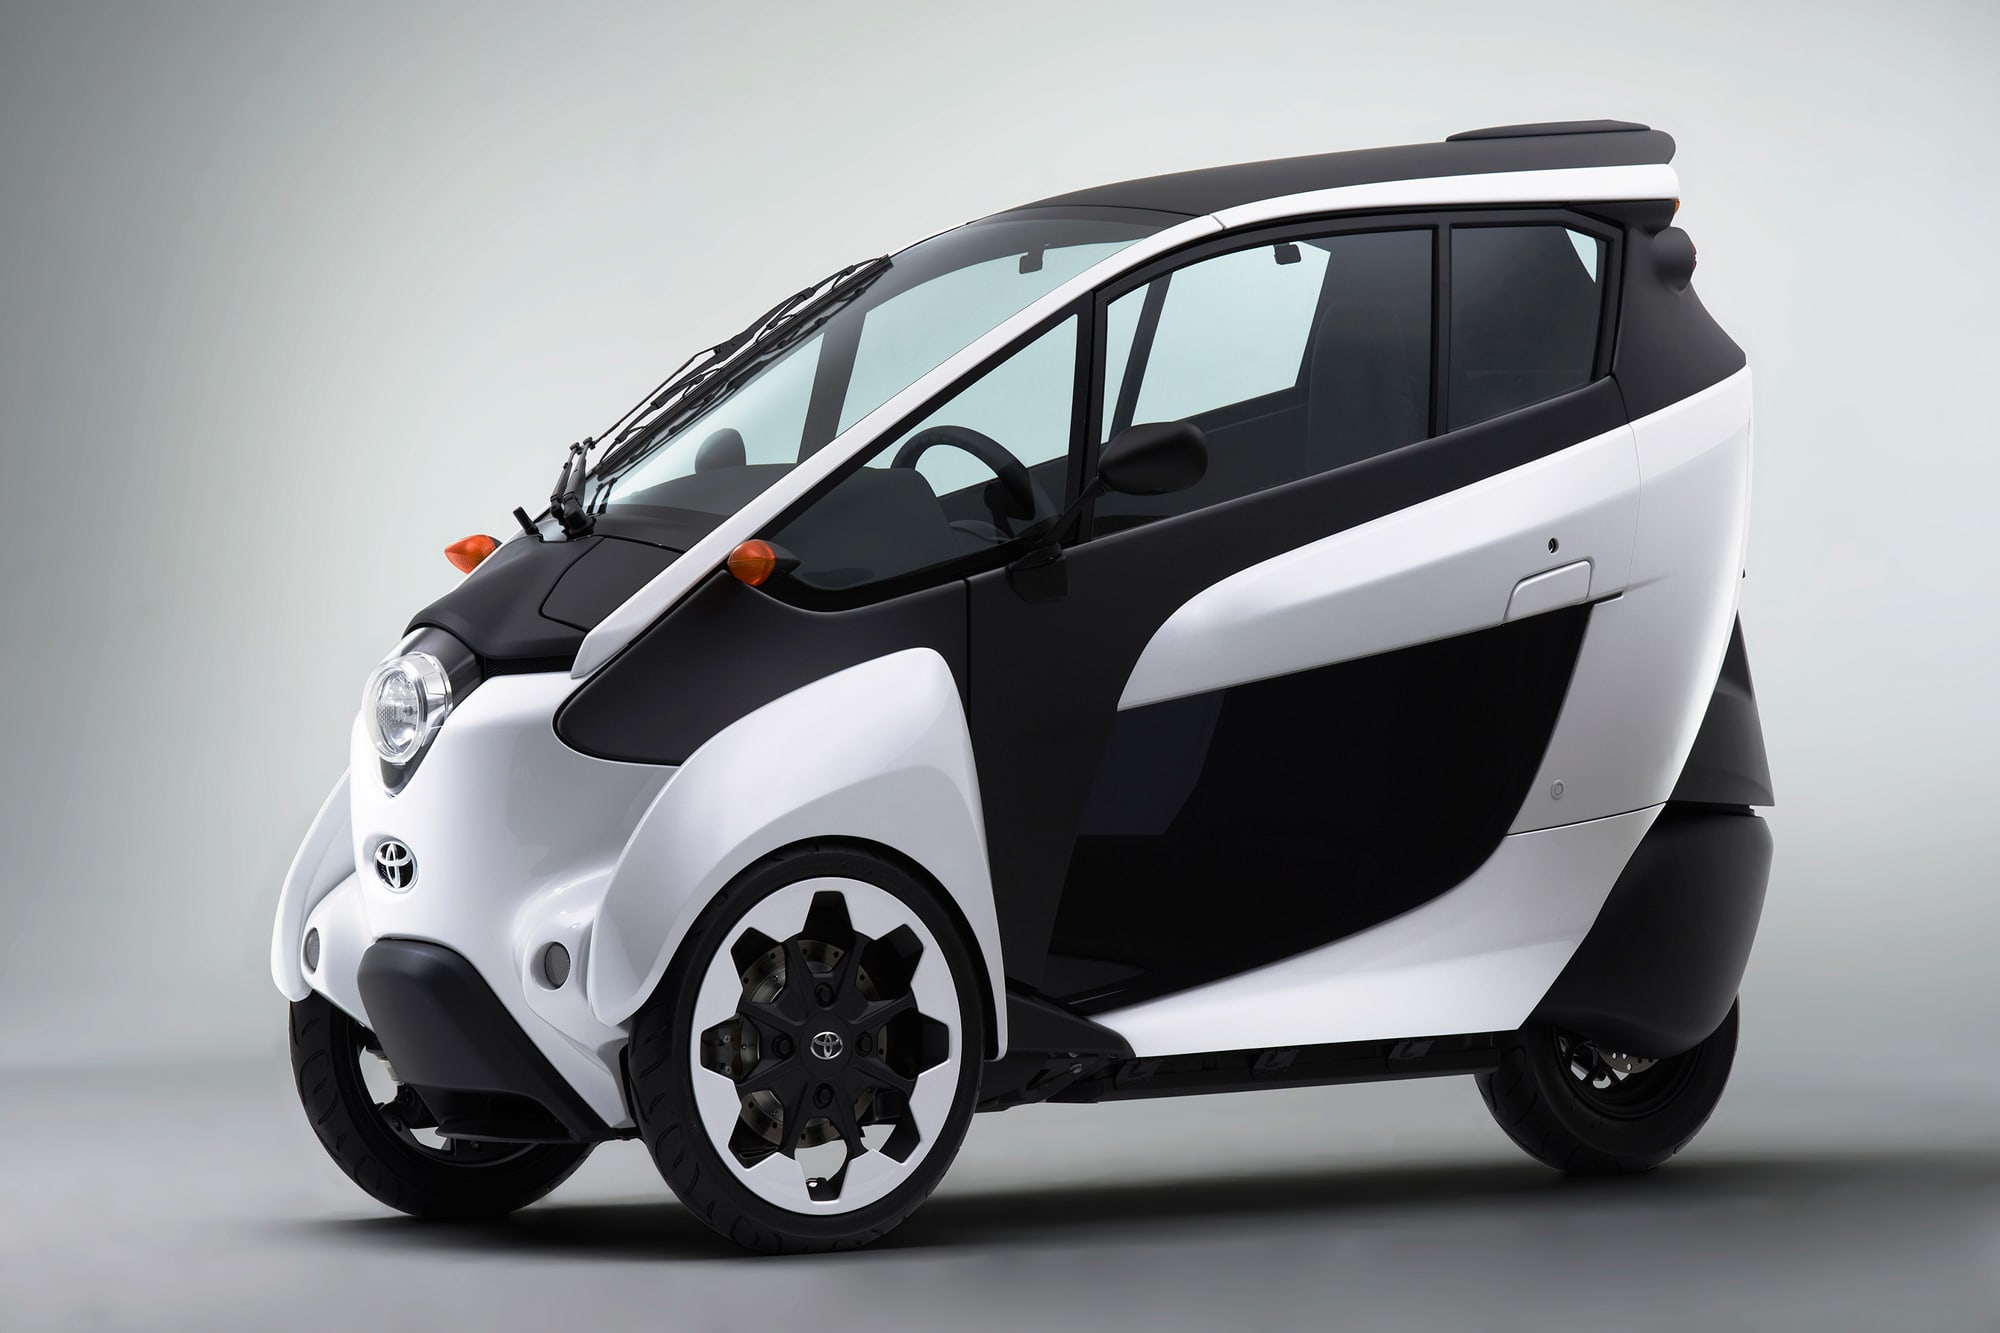 Tiny Electric Three Wheeled Vehicle Nve Media Toyota Shows The Iroad A Fullyenclosed Tilting Electra Meccanica Solo